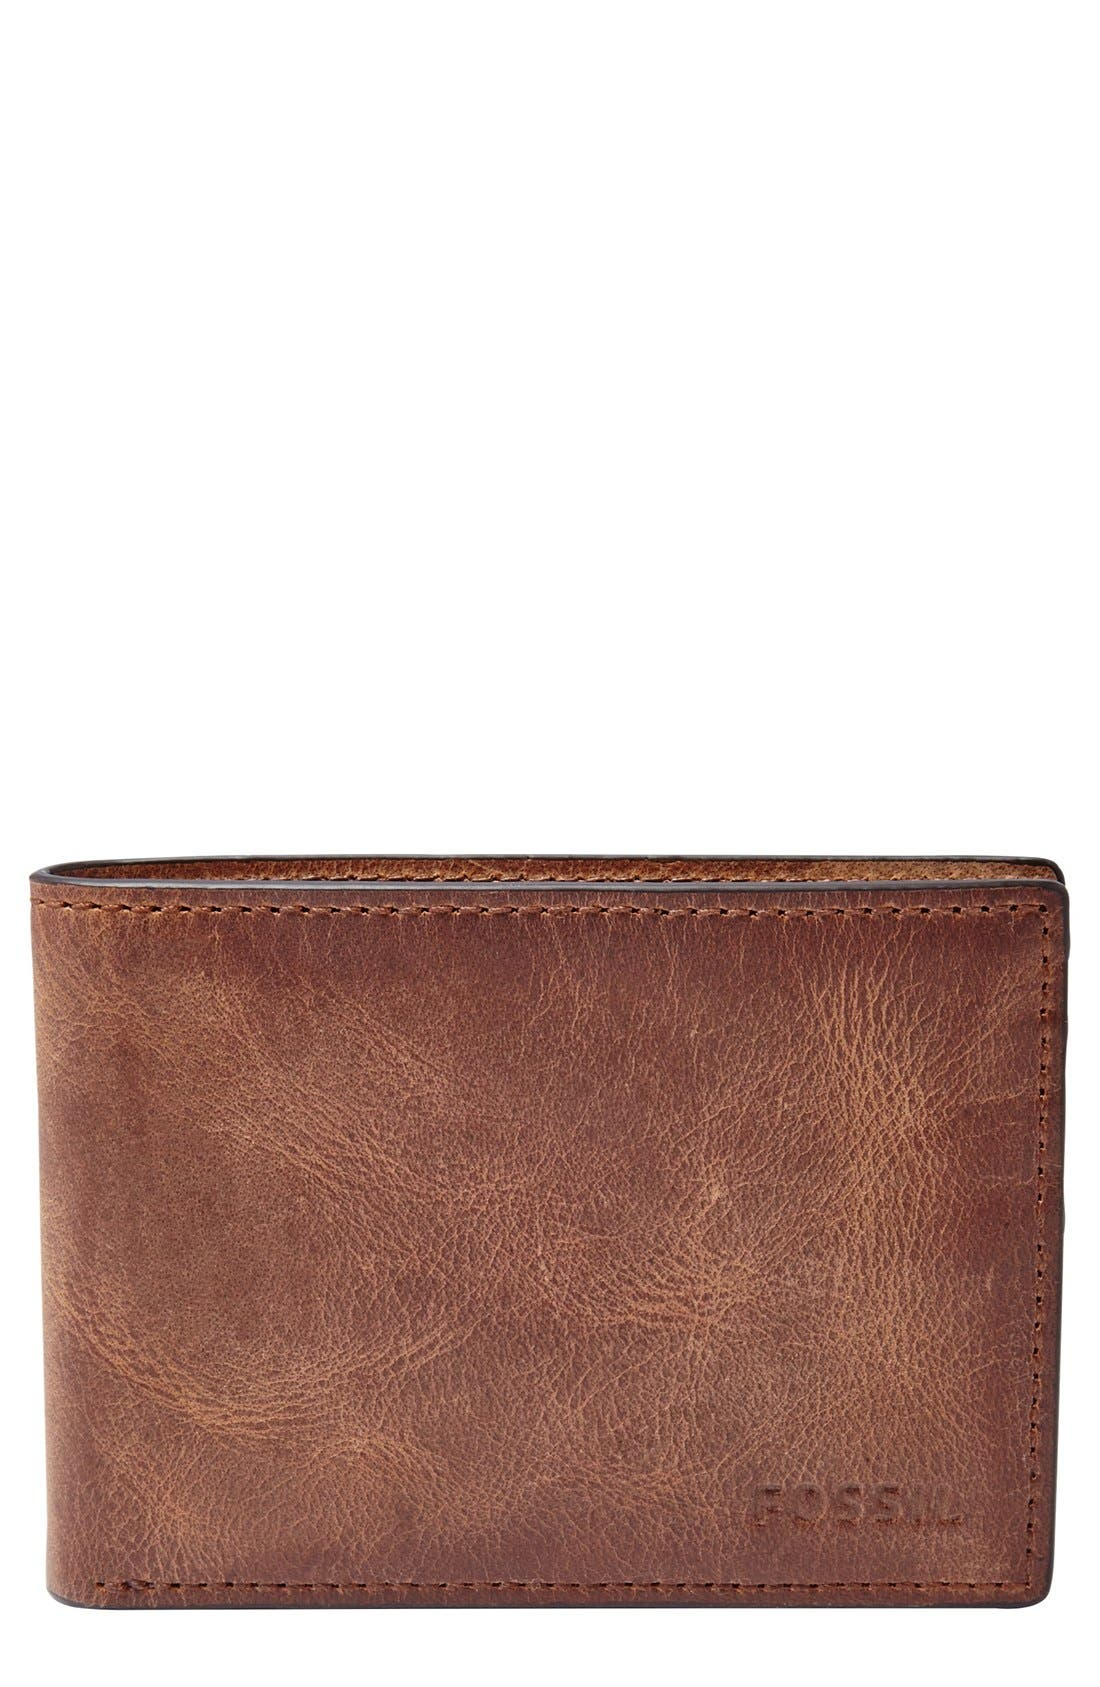 FOSSIL 'Derrick' Leather Front Pocket Bifold Wallet, Main, color, BROWN